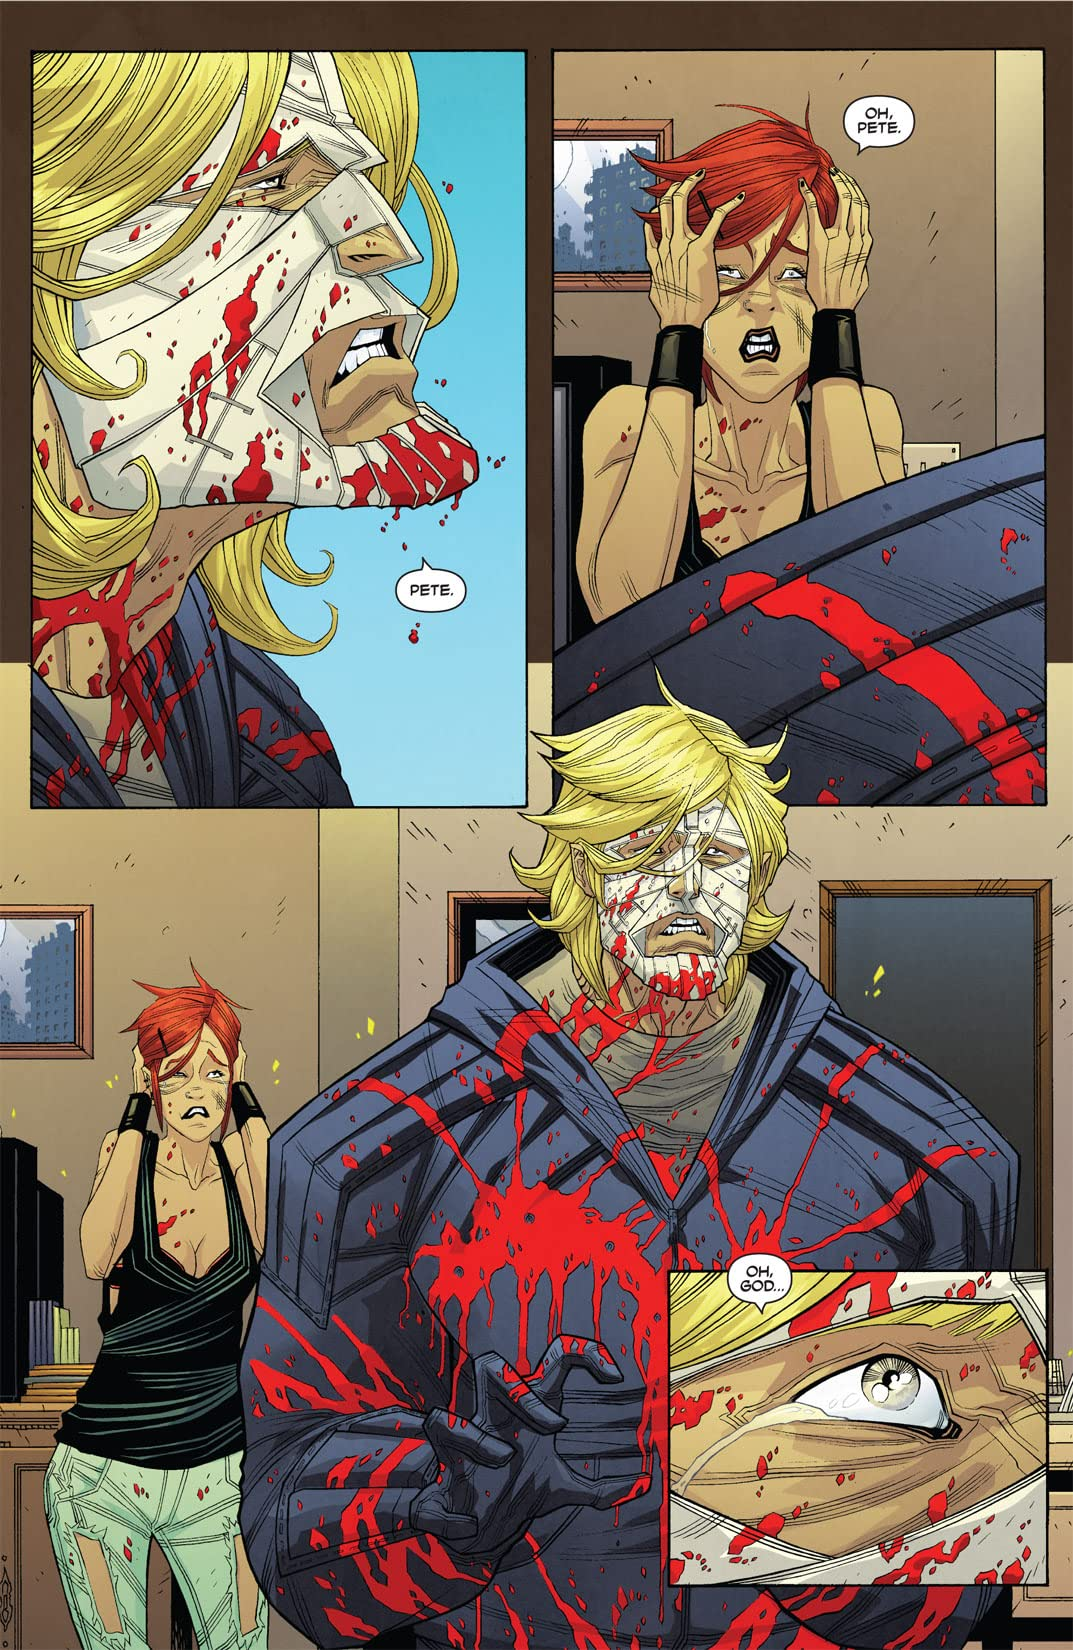 The Strange Talent of Luther Strode #6 (of 6)